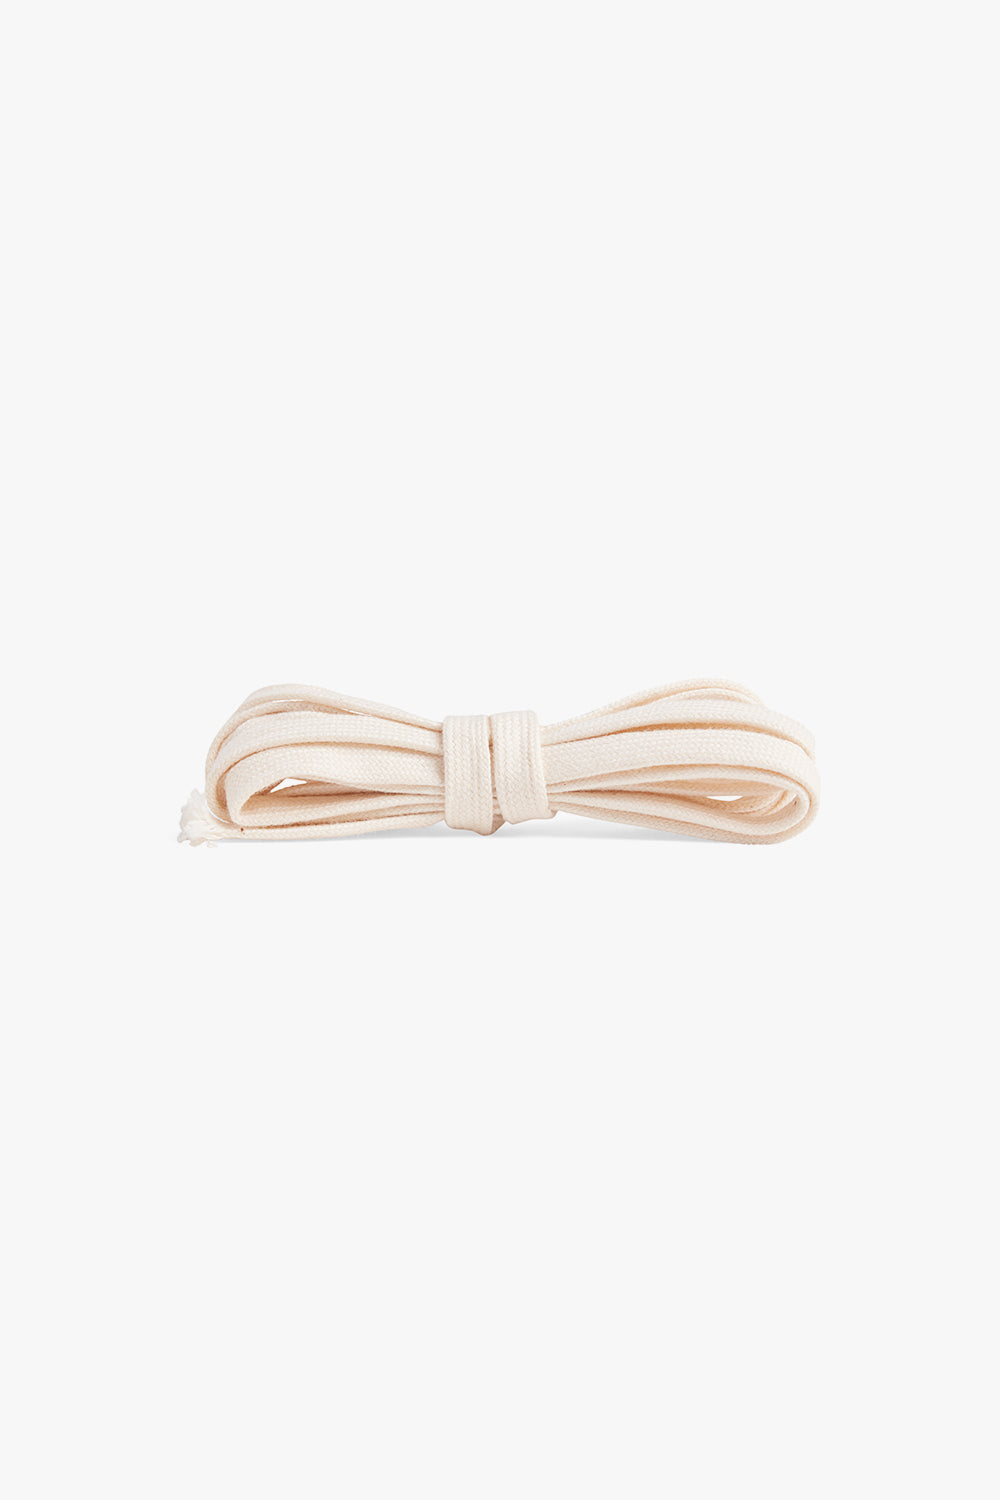 cotton flat cord / natural